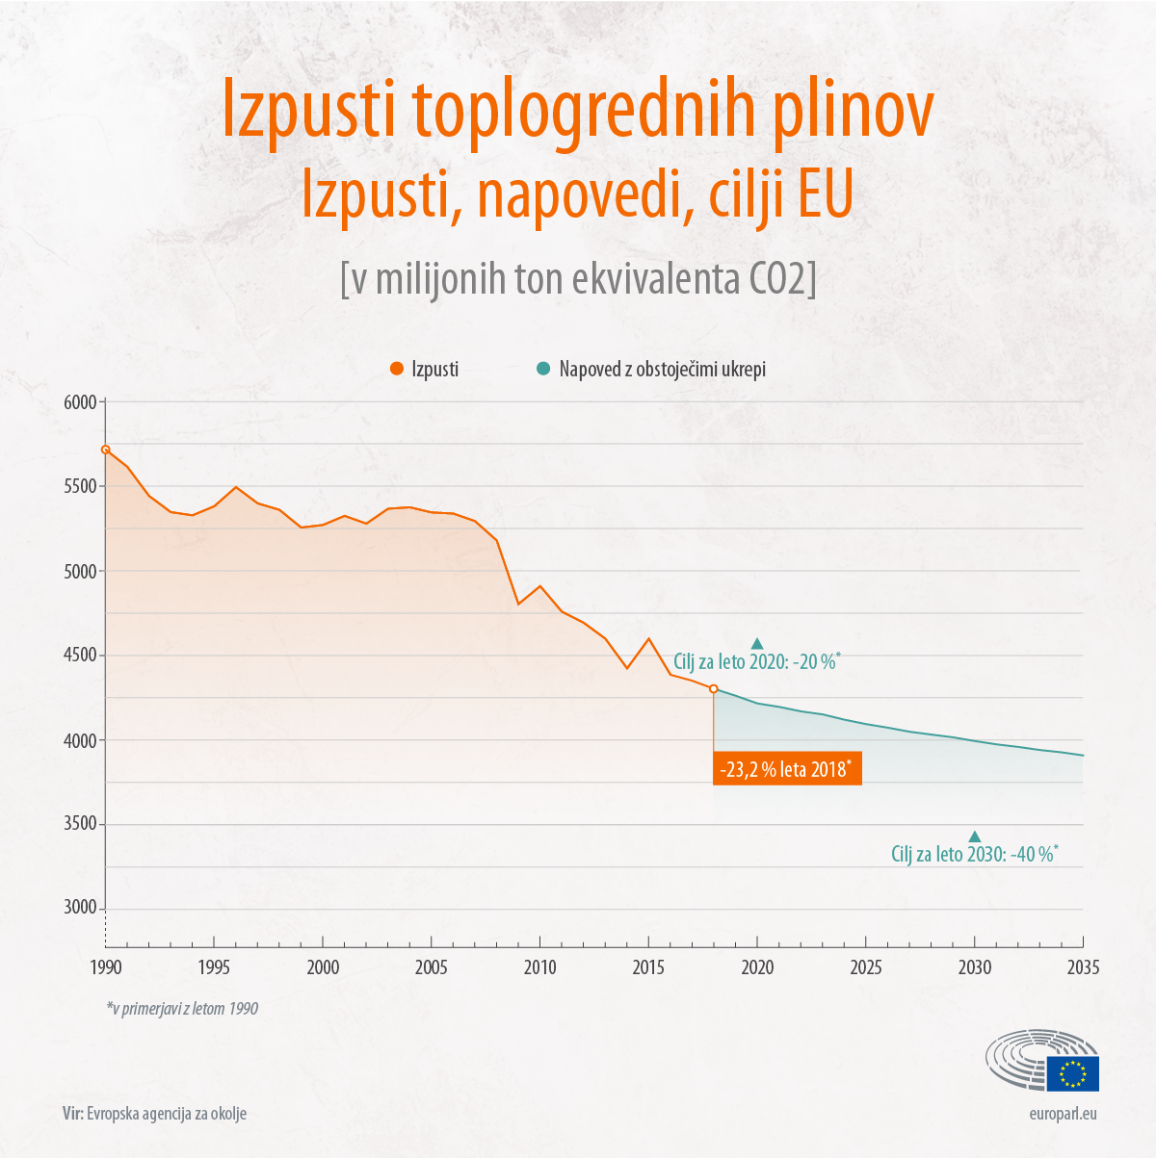 Graphic showing the evolution of greenhouse gas emissions in the EU between 1990 and 2020 and projections up to 2035